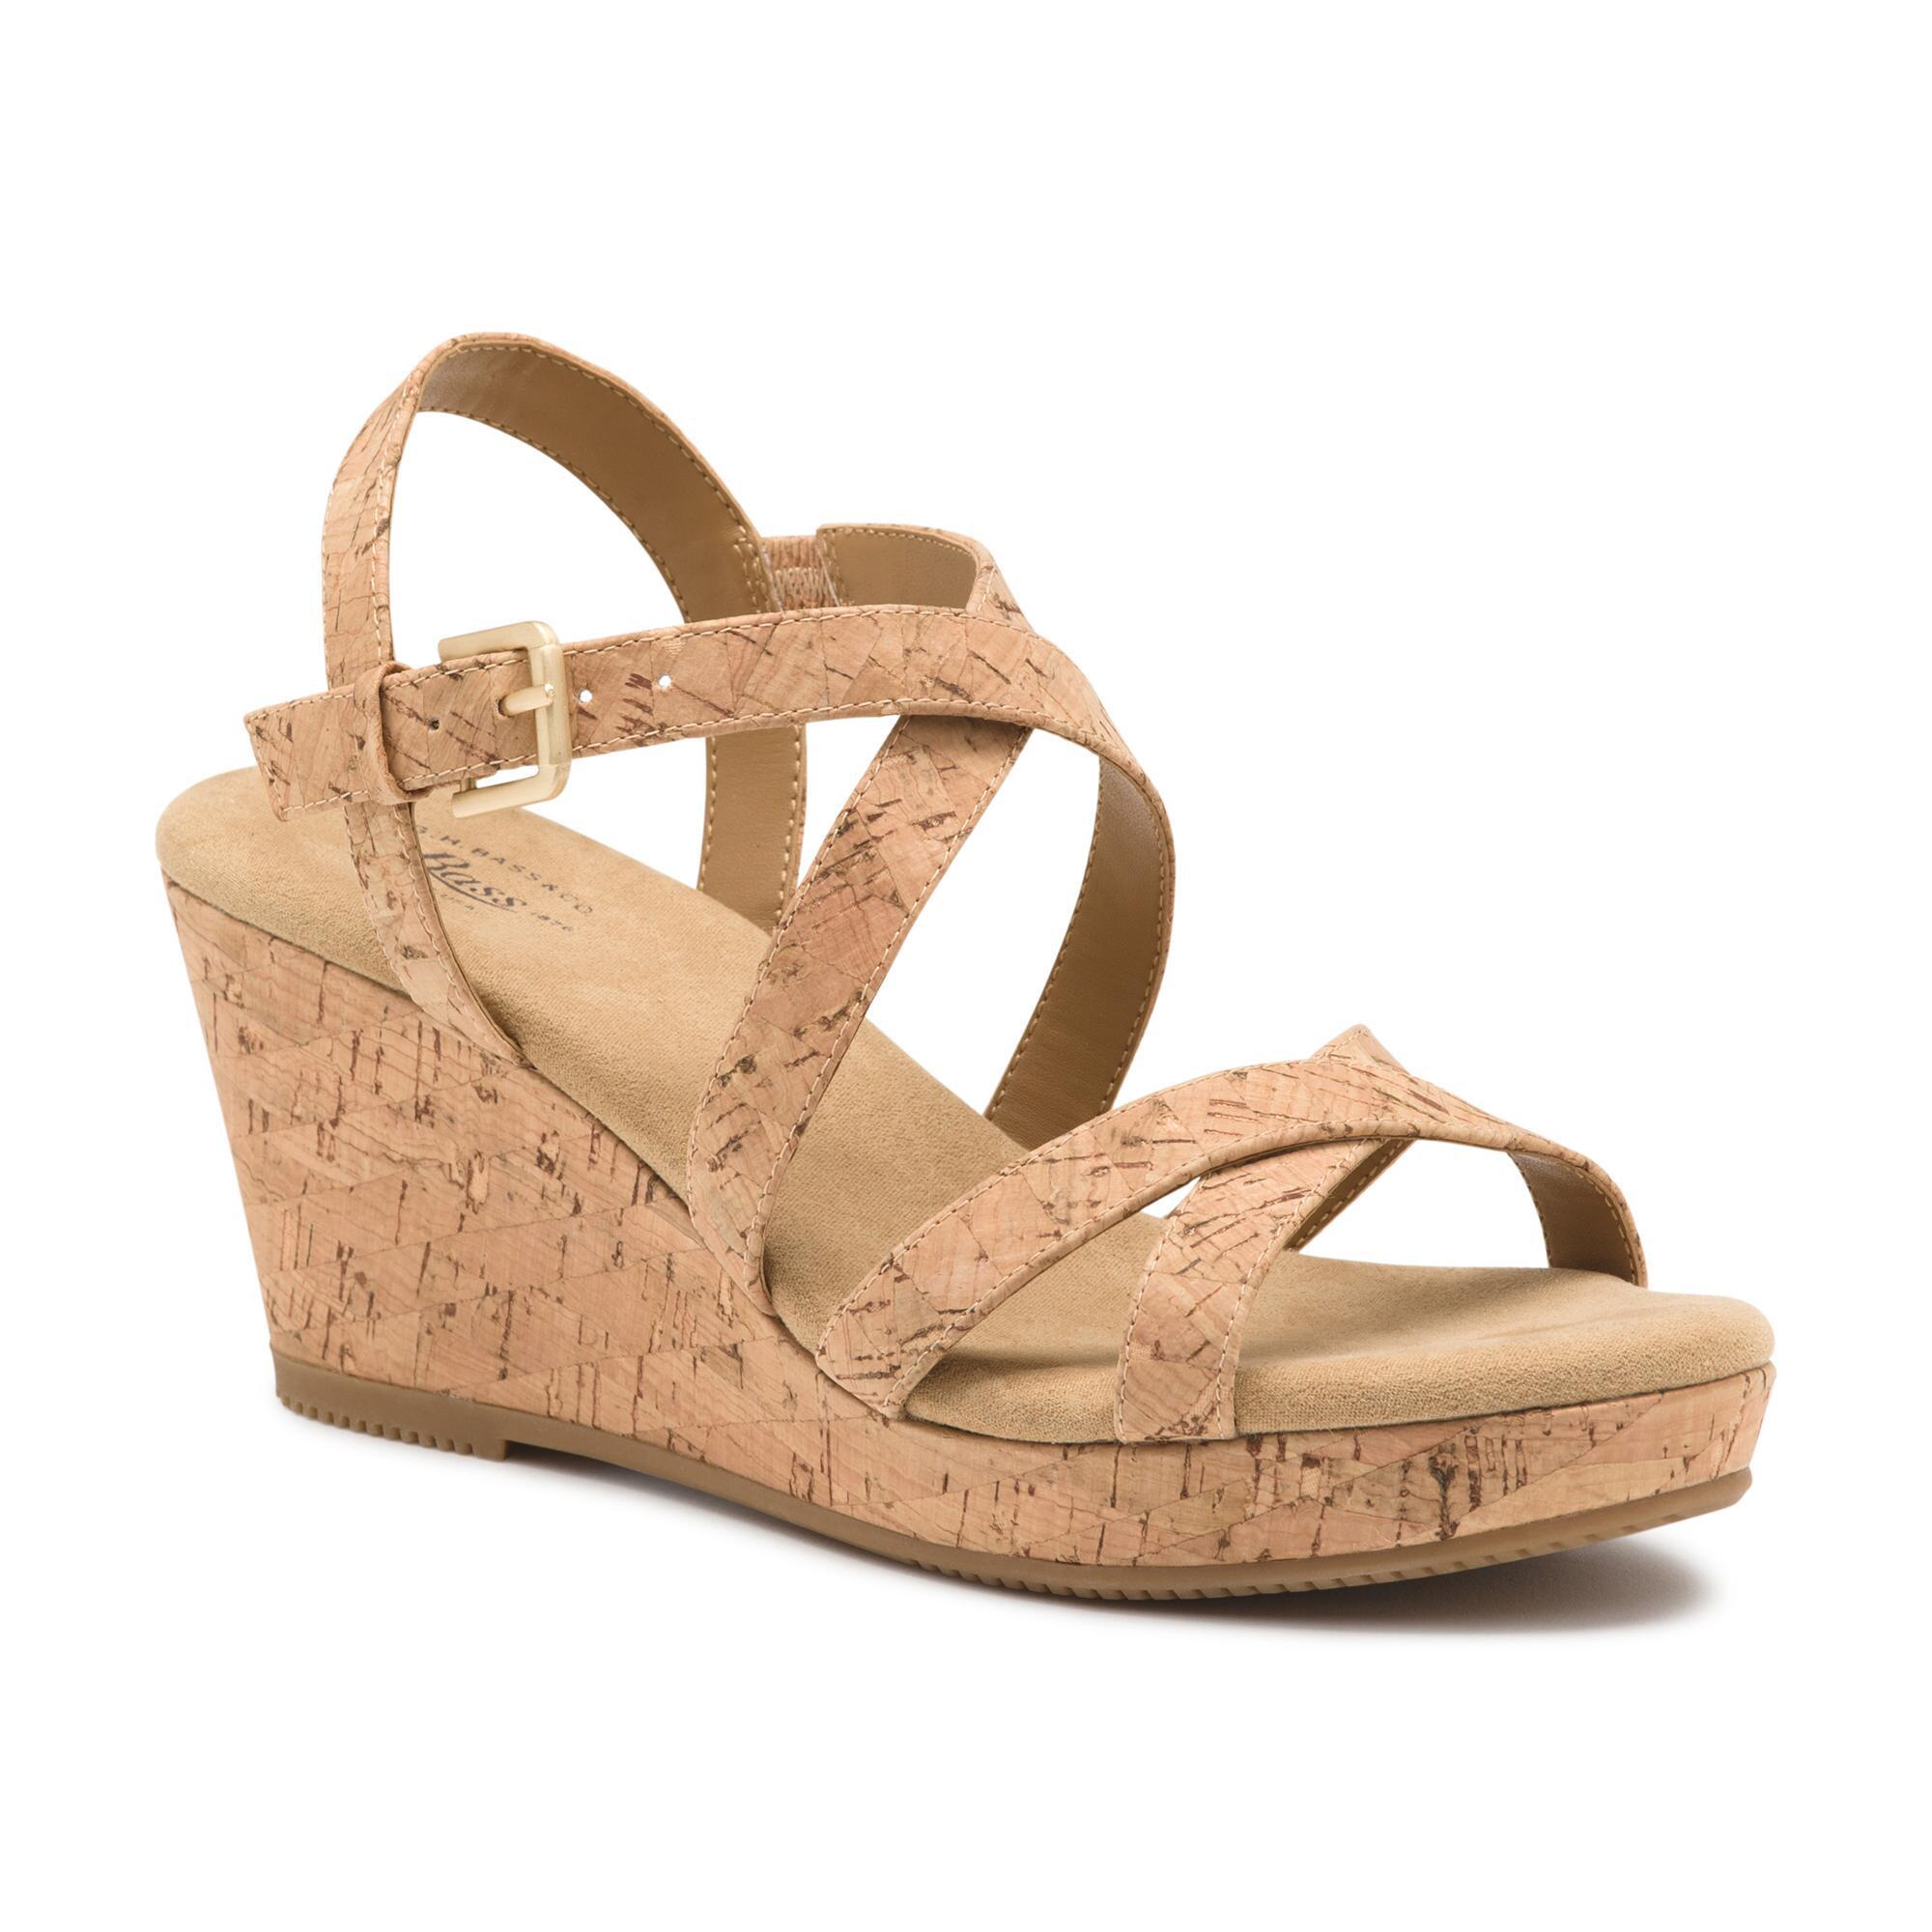 deputy wear in p shoes actually we i to weddings sharon that kanter it the style cute best shopping comfortable strong tried are comforter wedge and picks sandals editors can night dance comfort em director all